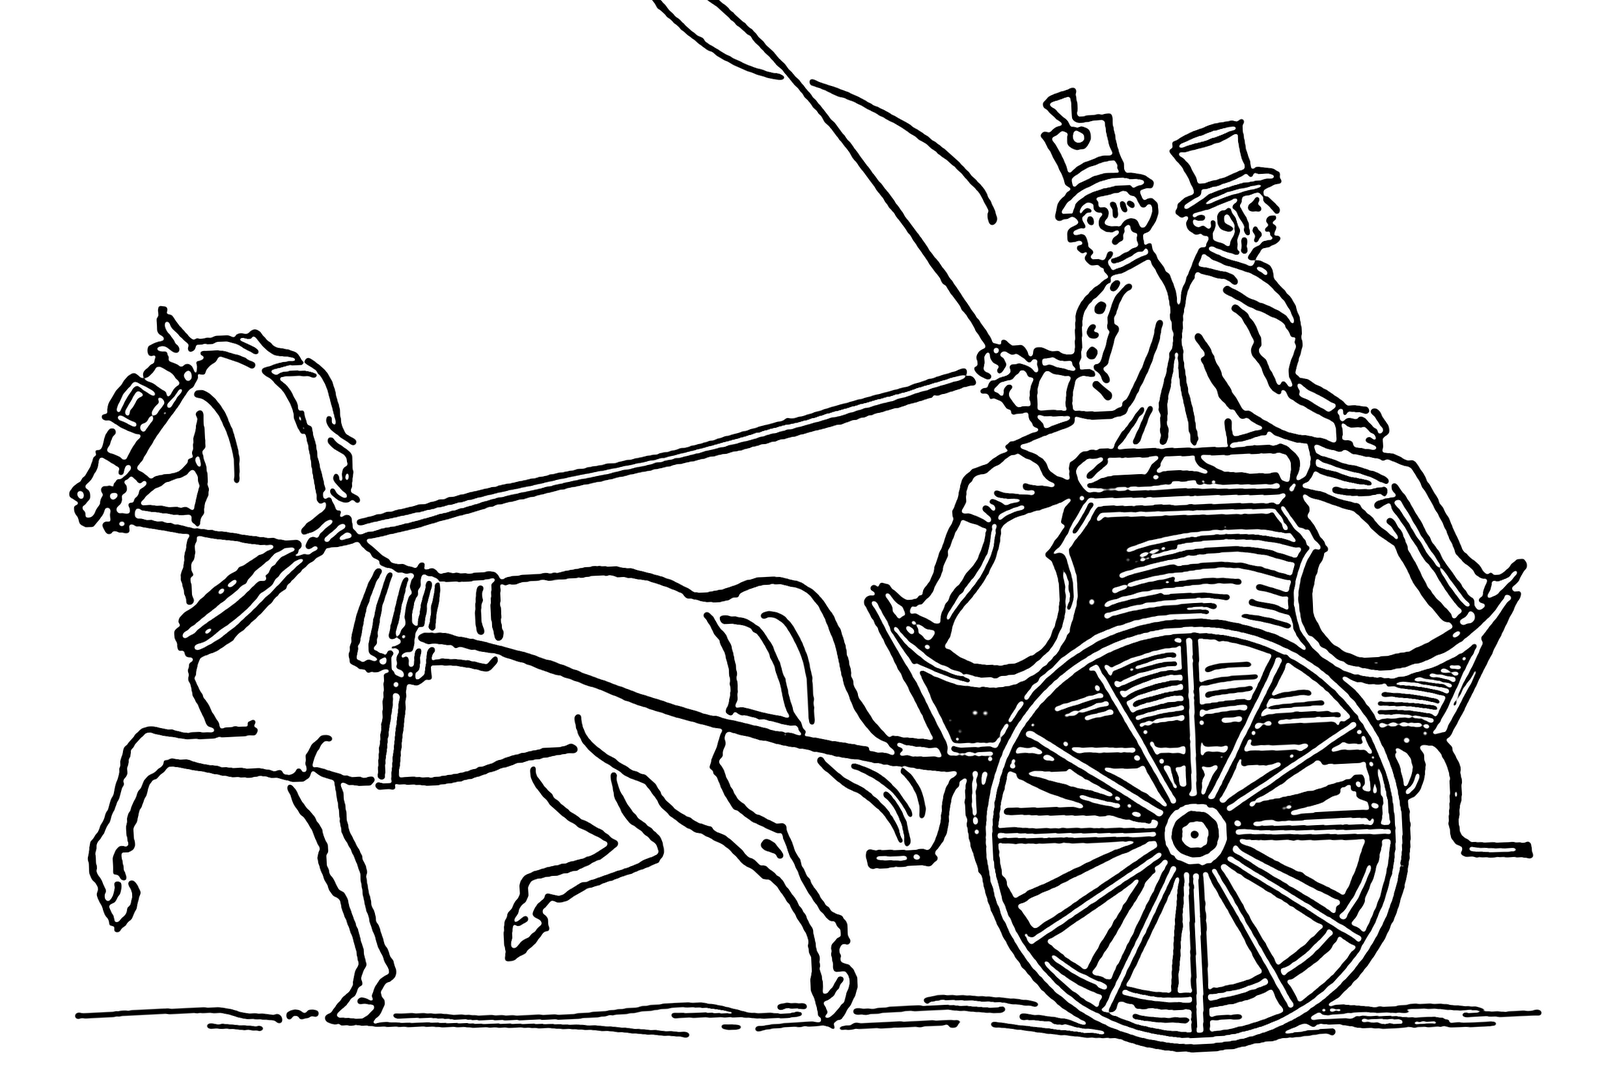 santa horse buggy coloring pages - photo#19